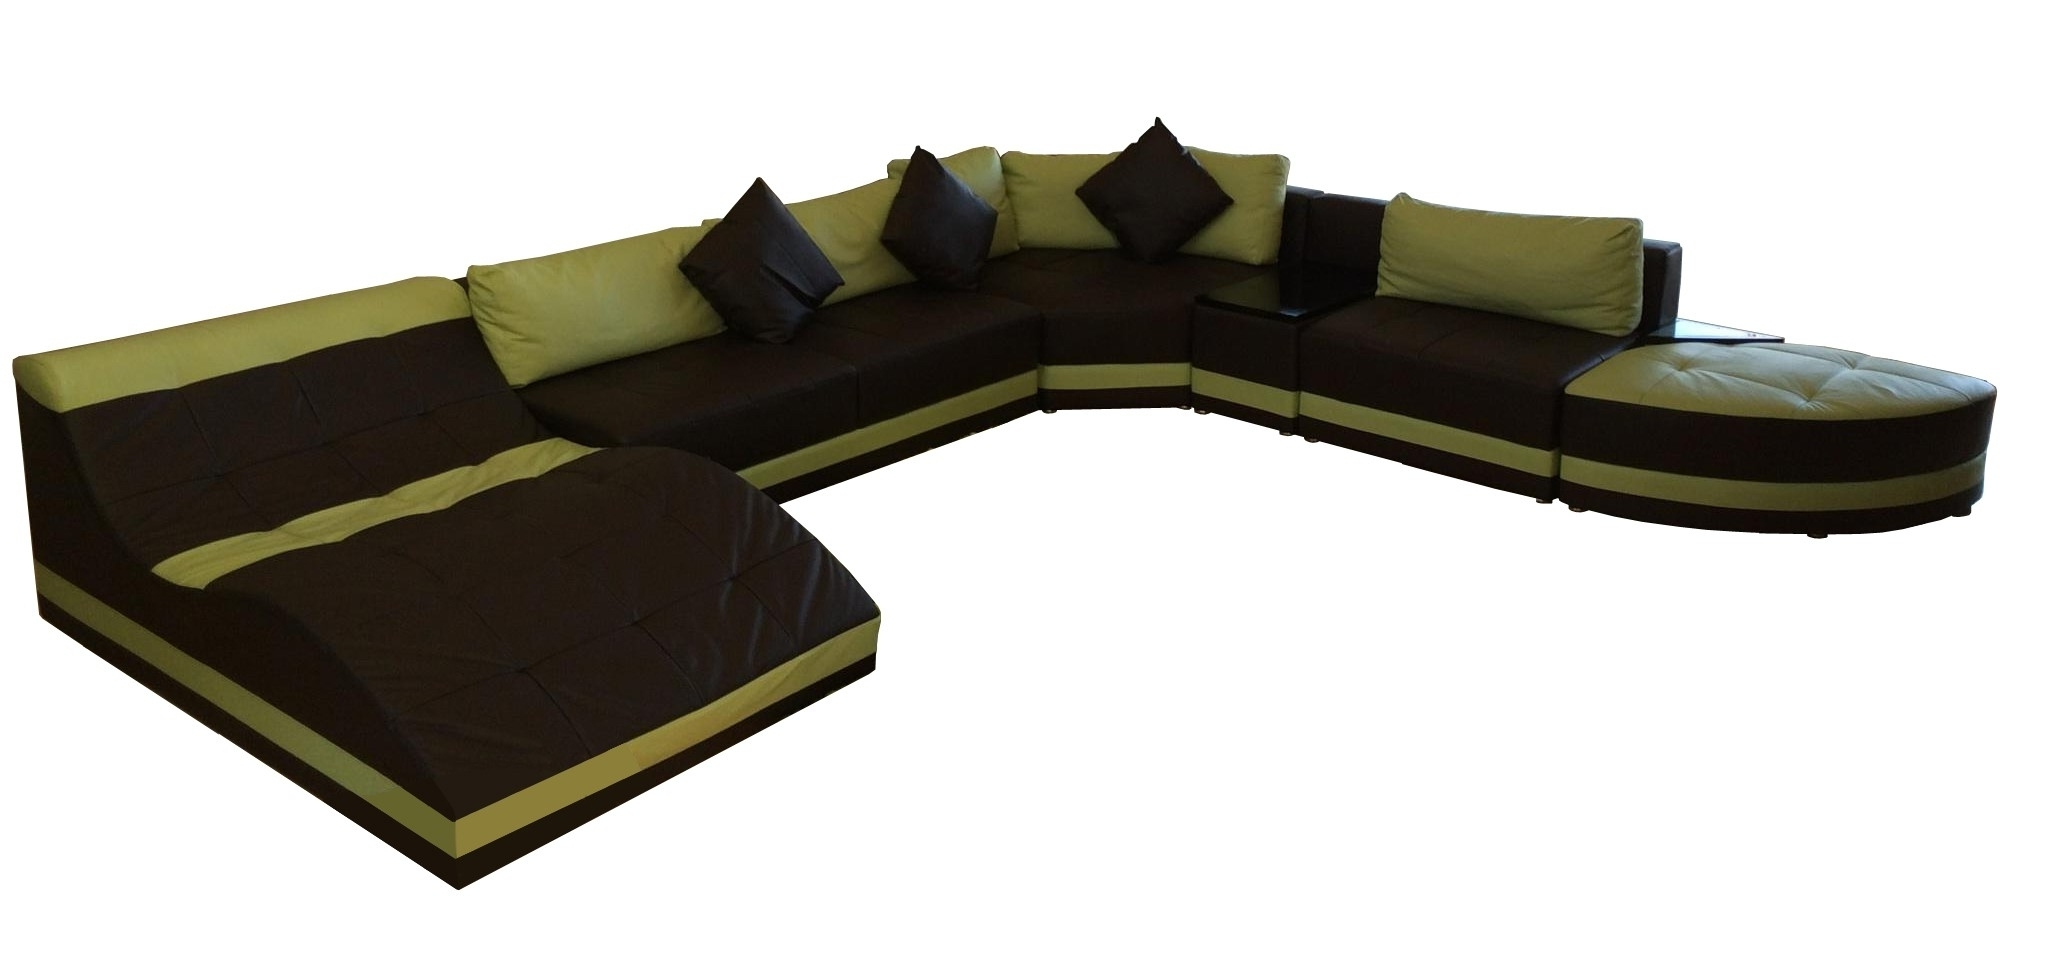 Extra Large Sectional Sofas With Chaise With Most Up To Date Extra Large Sectional Sofas With Chaise (View 8 of 15)